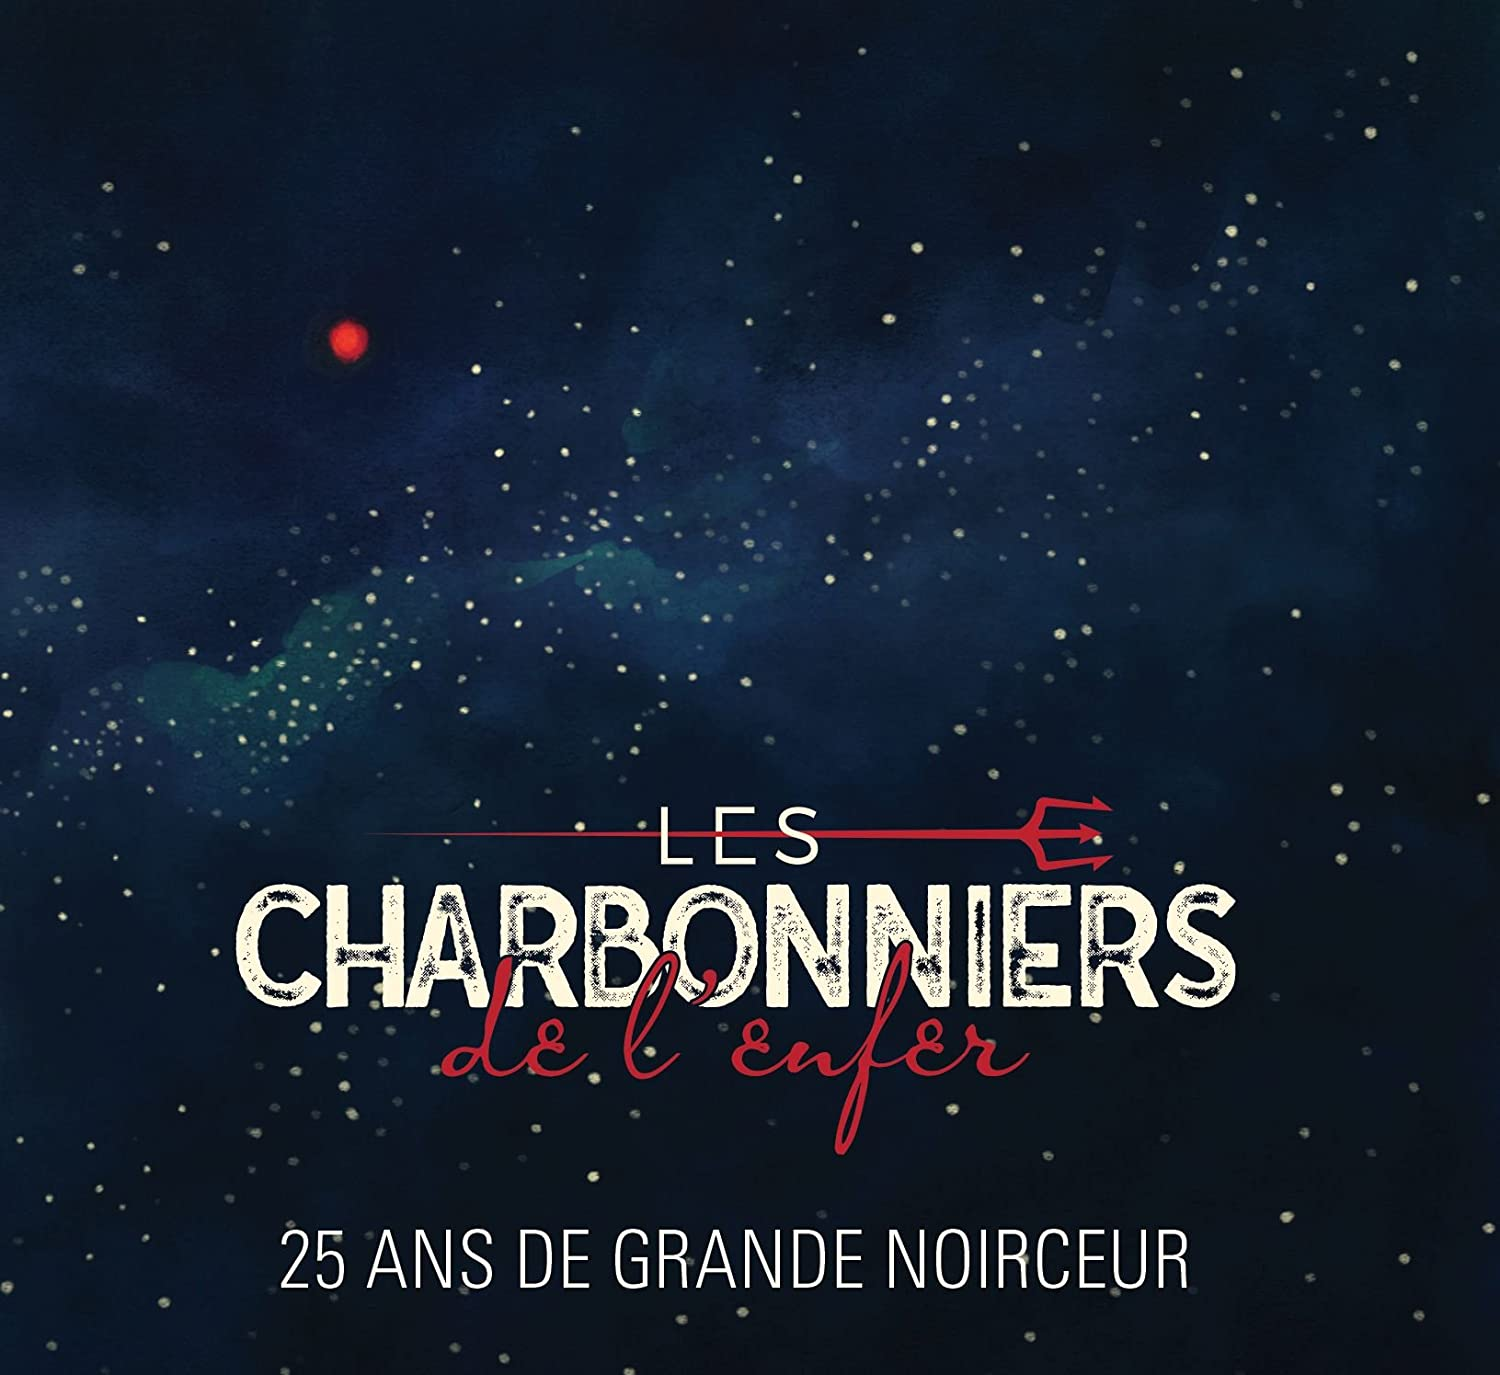 25 ans de grande noirceur Distribution Select (Music)